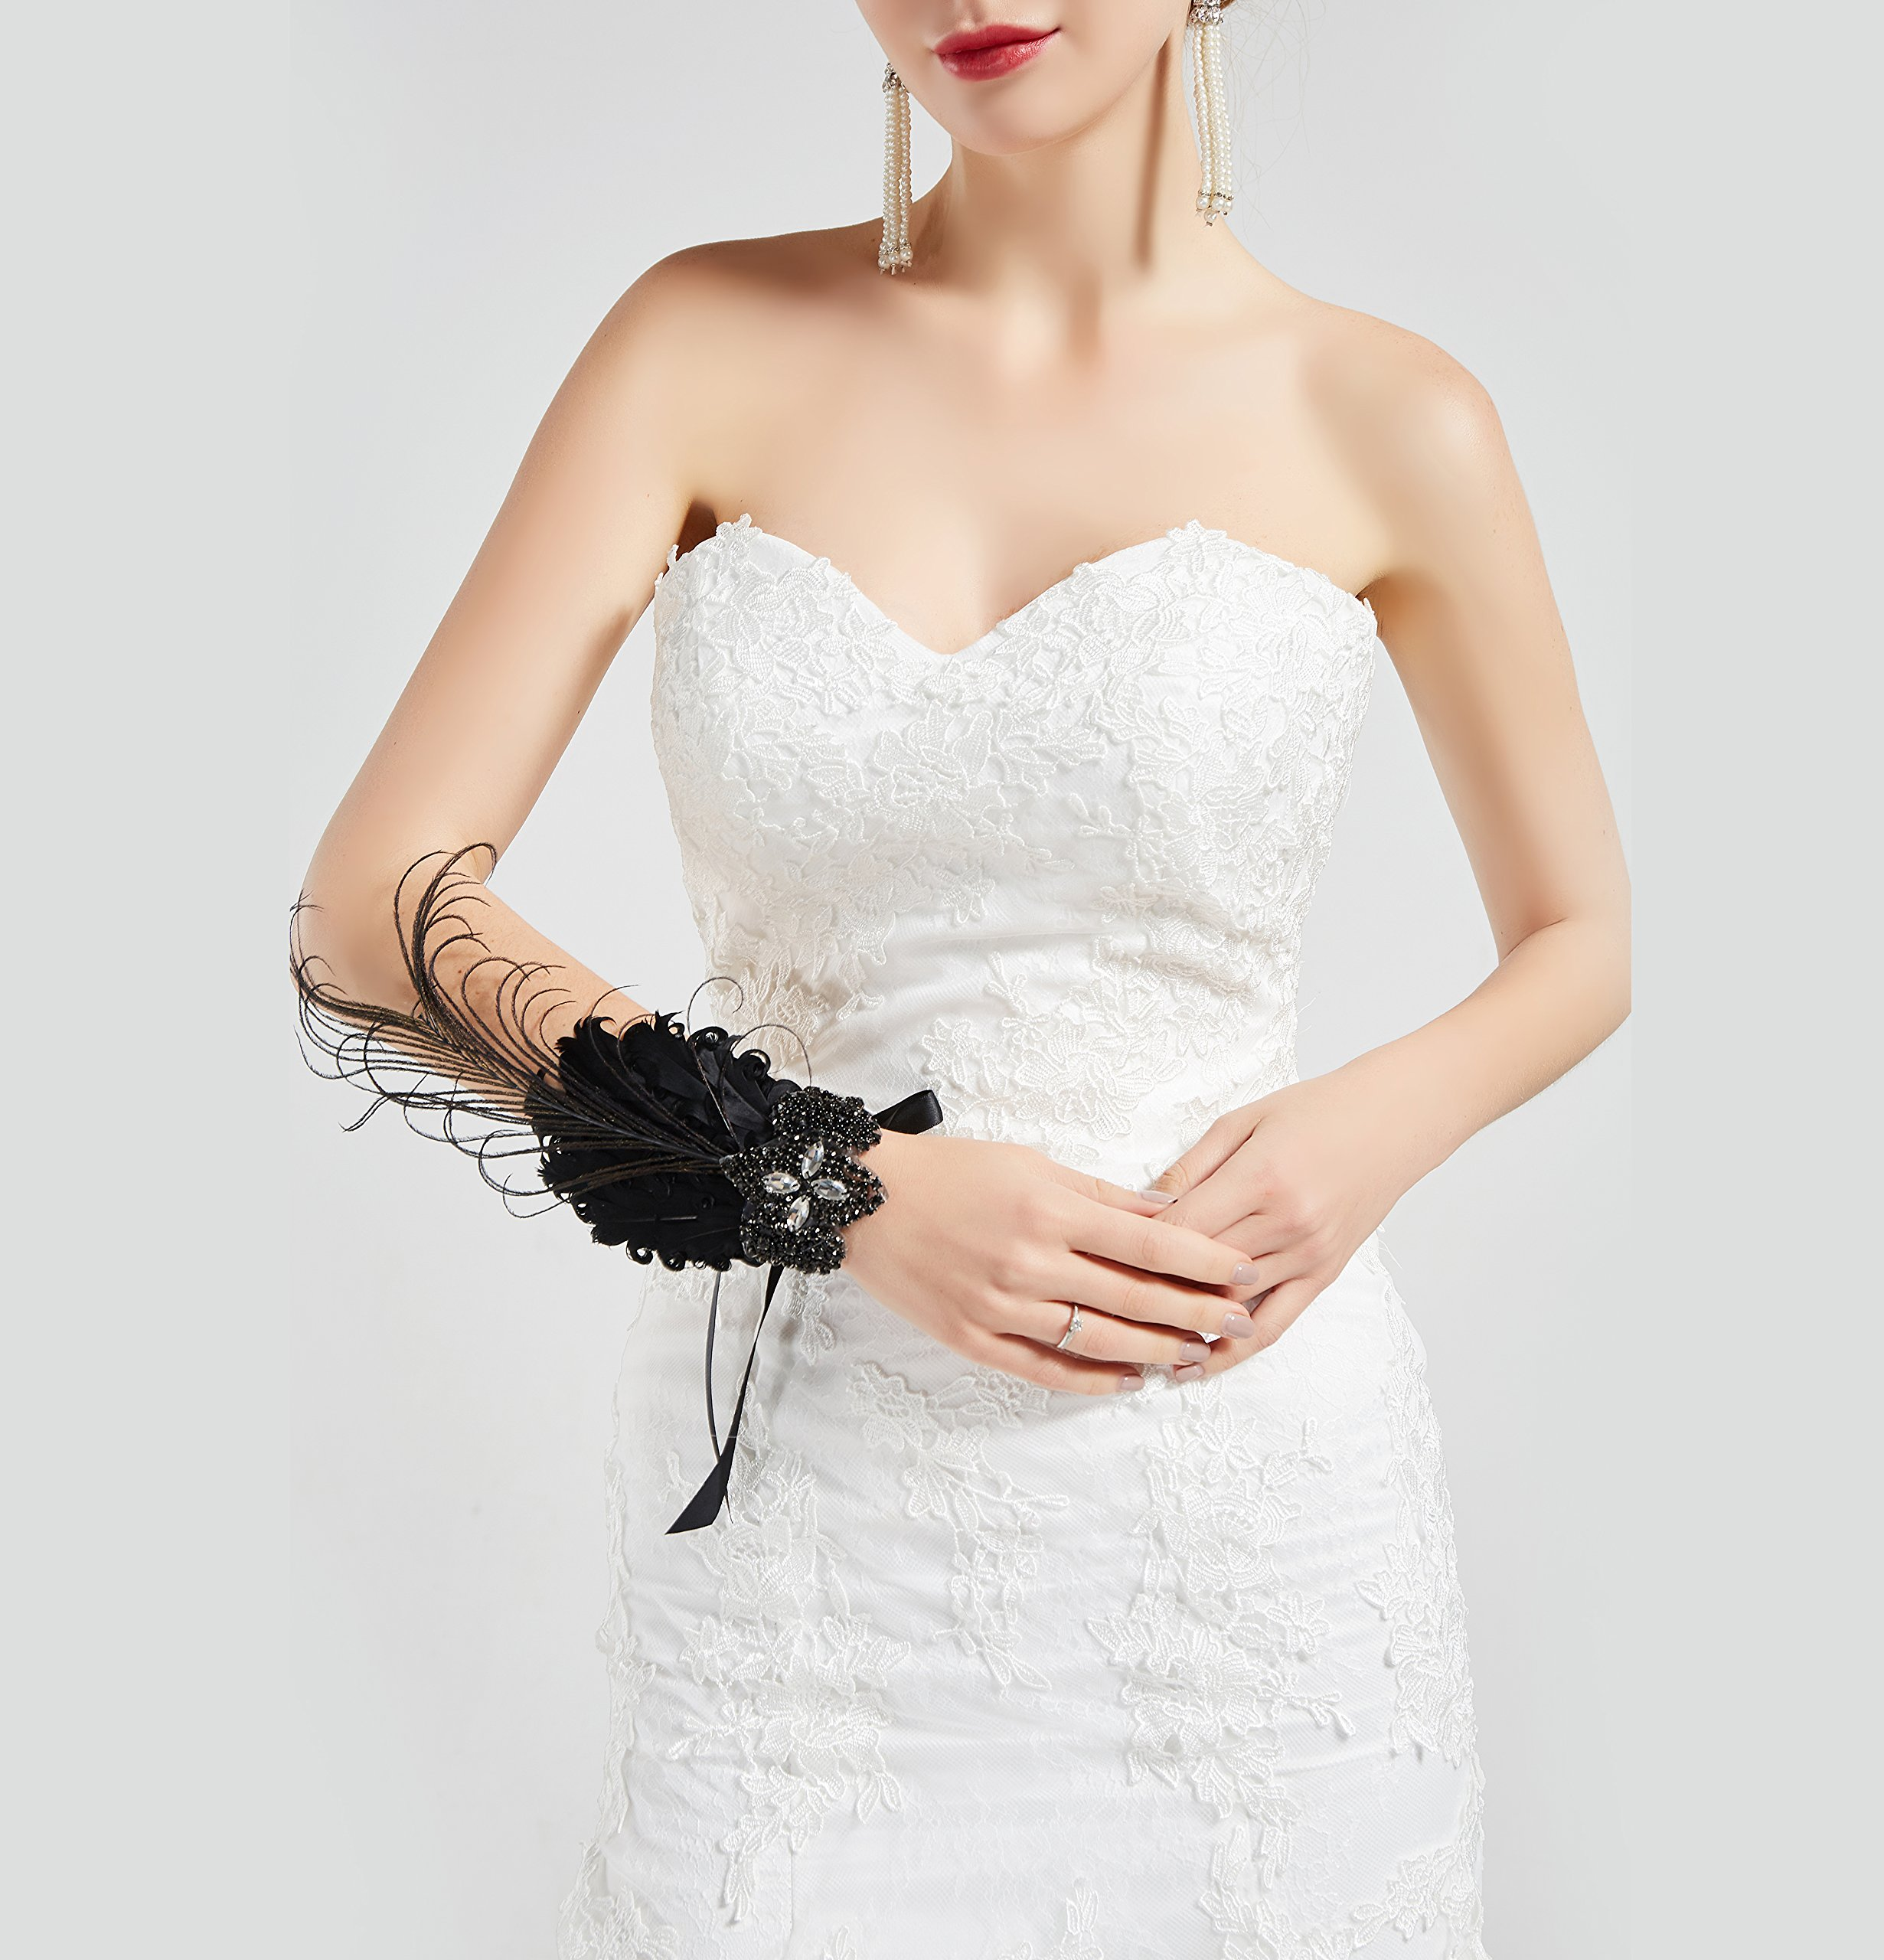 BABEYOND 1920s Wedding Wrist Corsage Gatsby Peacock Feather Bridal Wristband Corsage Roaring 20s Flapper Wedding Costume Accessories (Black by BABEYOND (Image #5)